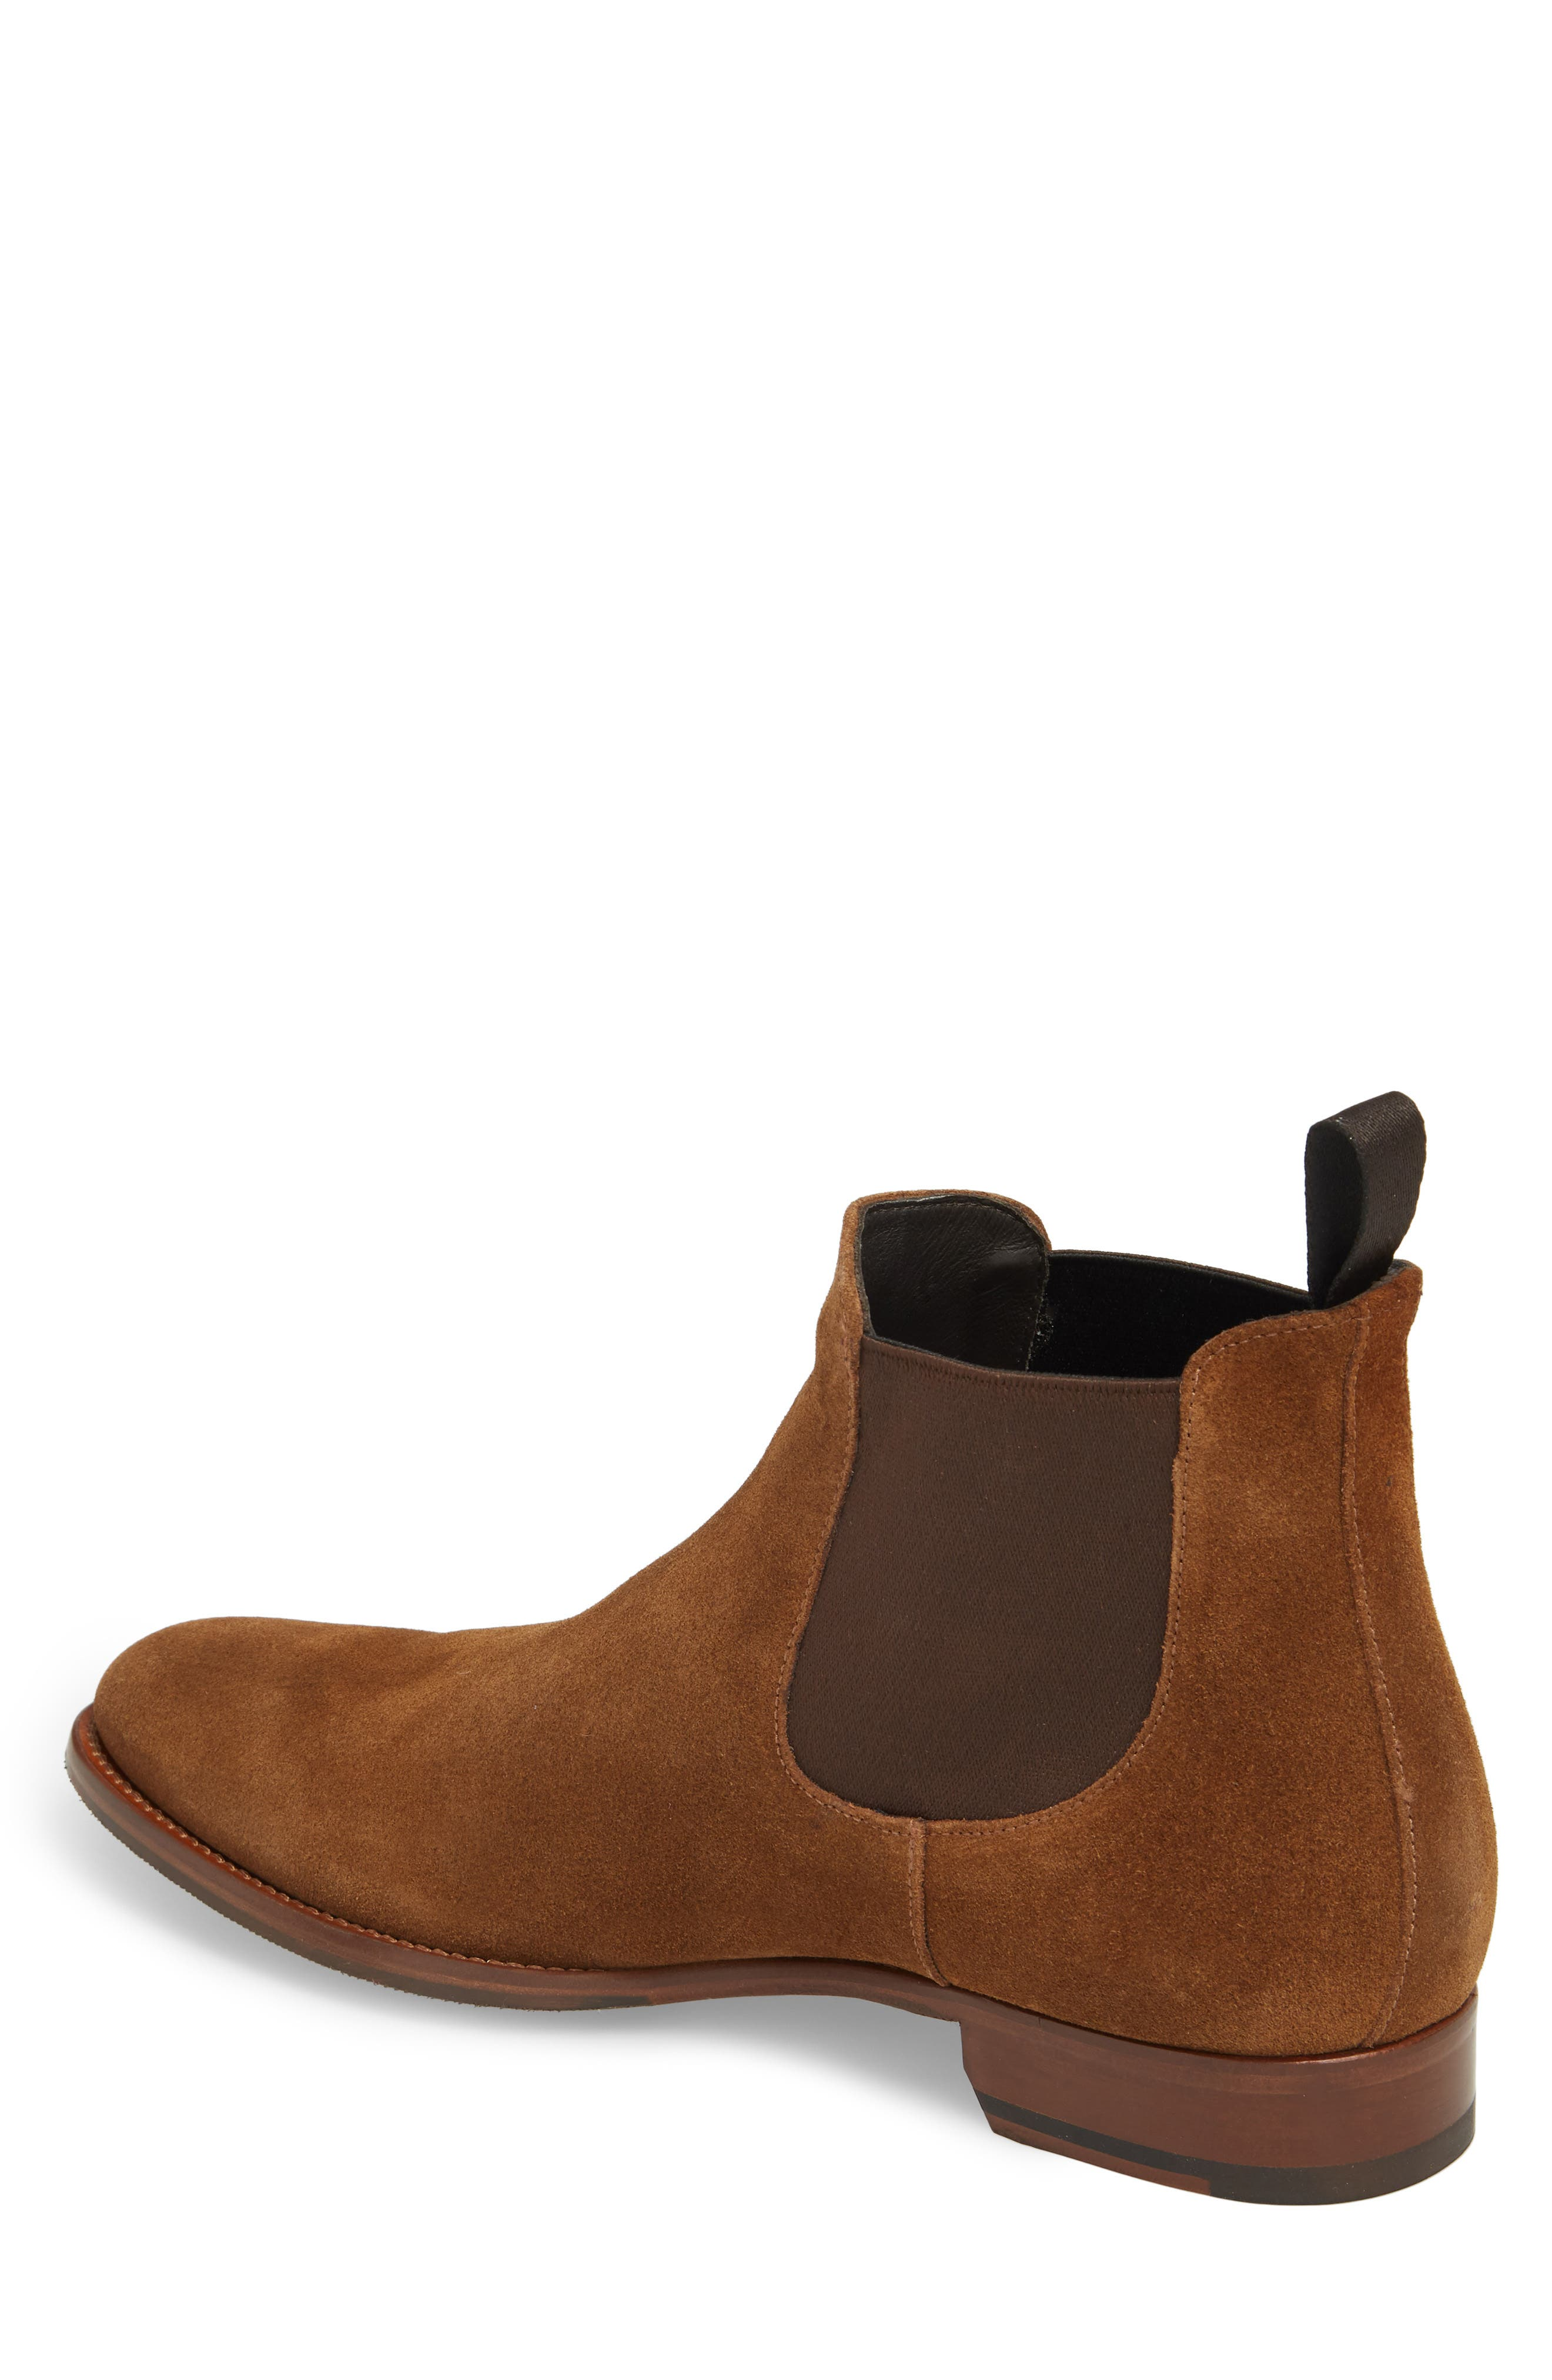 TO BOOT NEW YORK, Shelby Mid Chelsea Boot, Alternate thumbnail 2, color, MID BROWN SUEDE